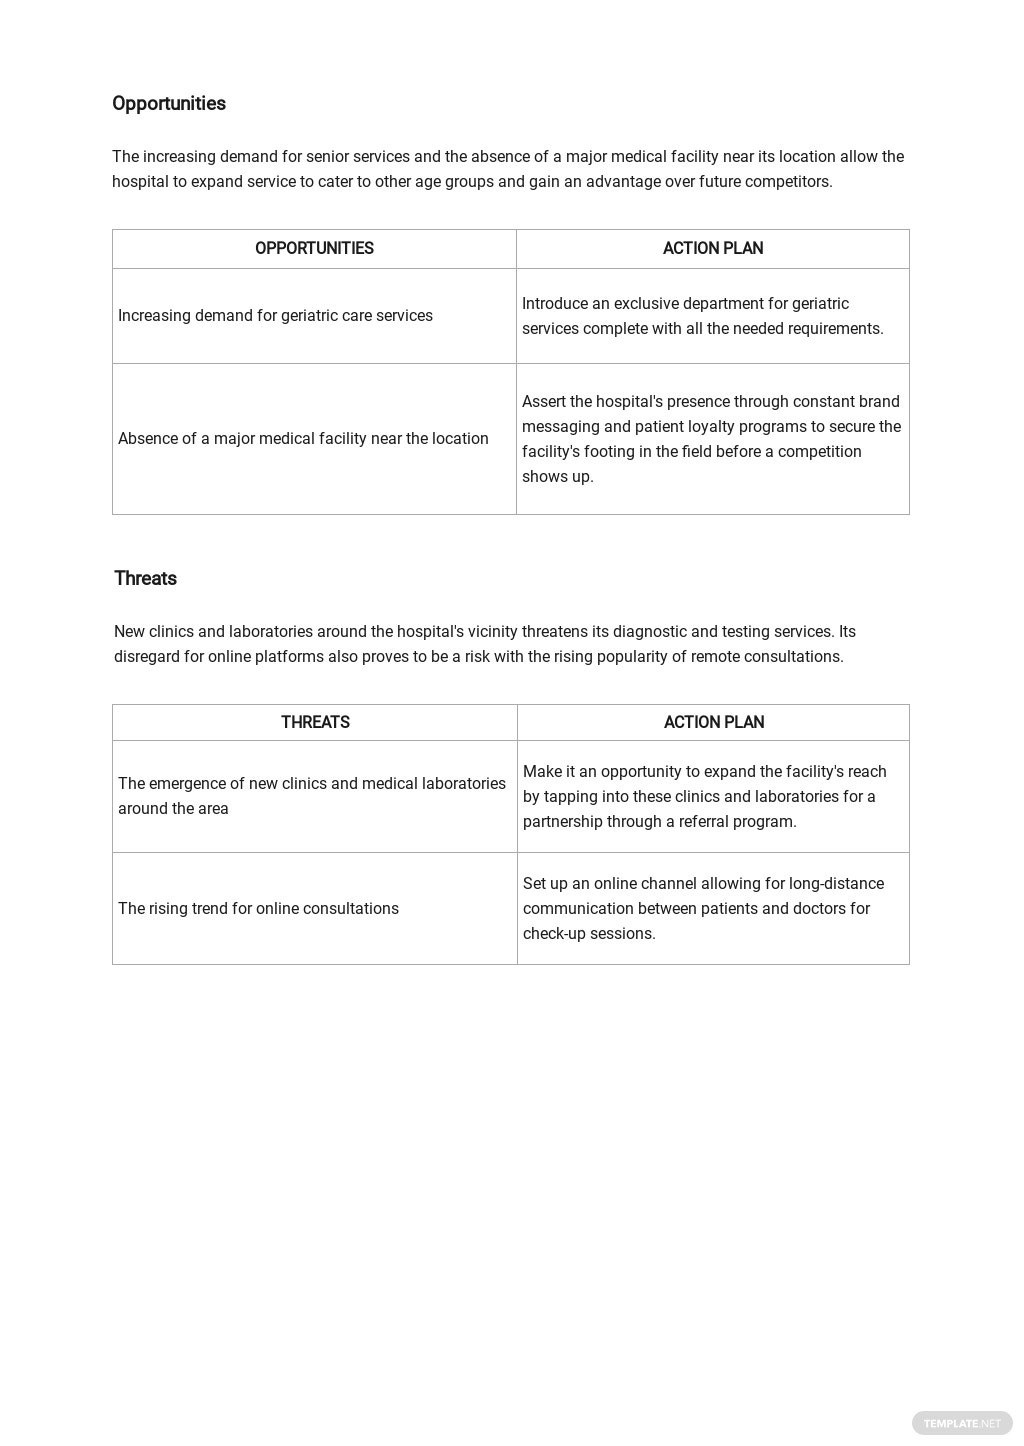 Hospital SWOT Analysis Template [Free PDF] - Google Docs, Word, Apple Pages